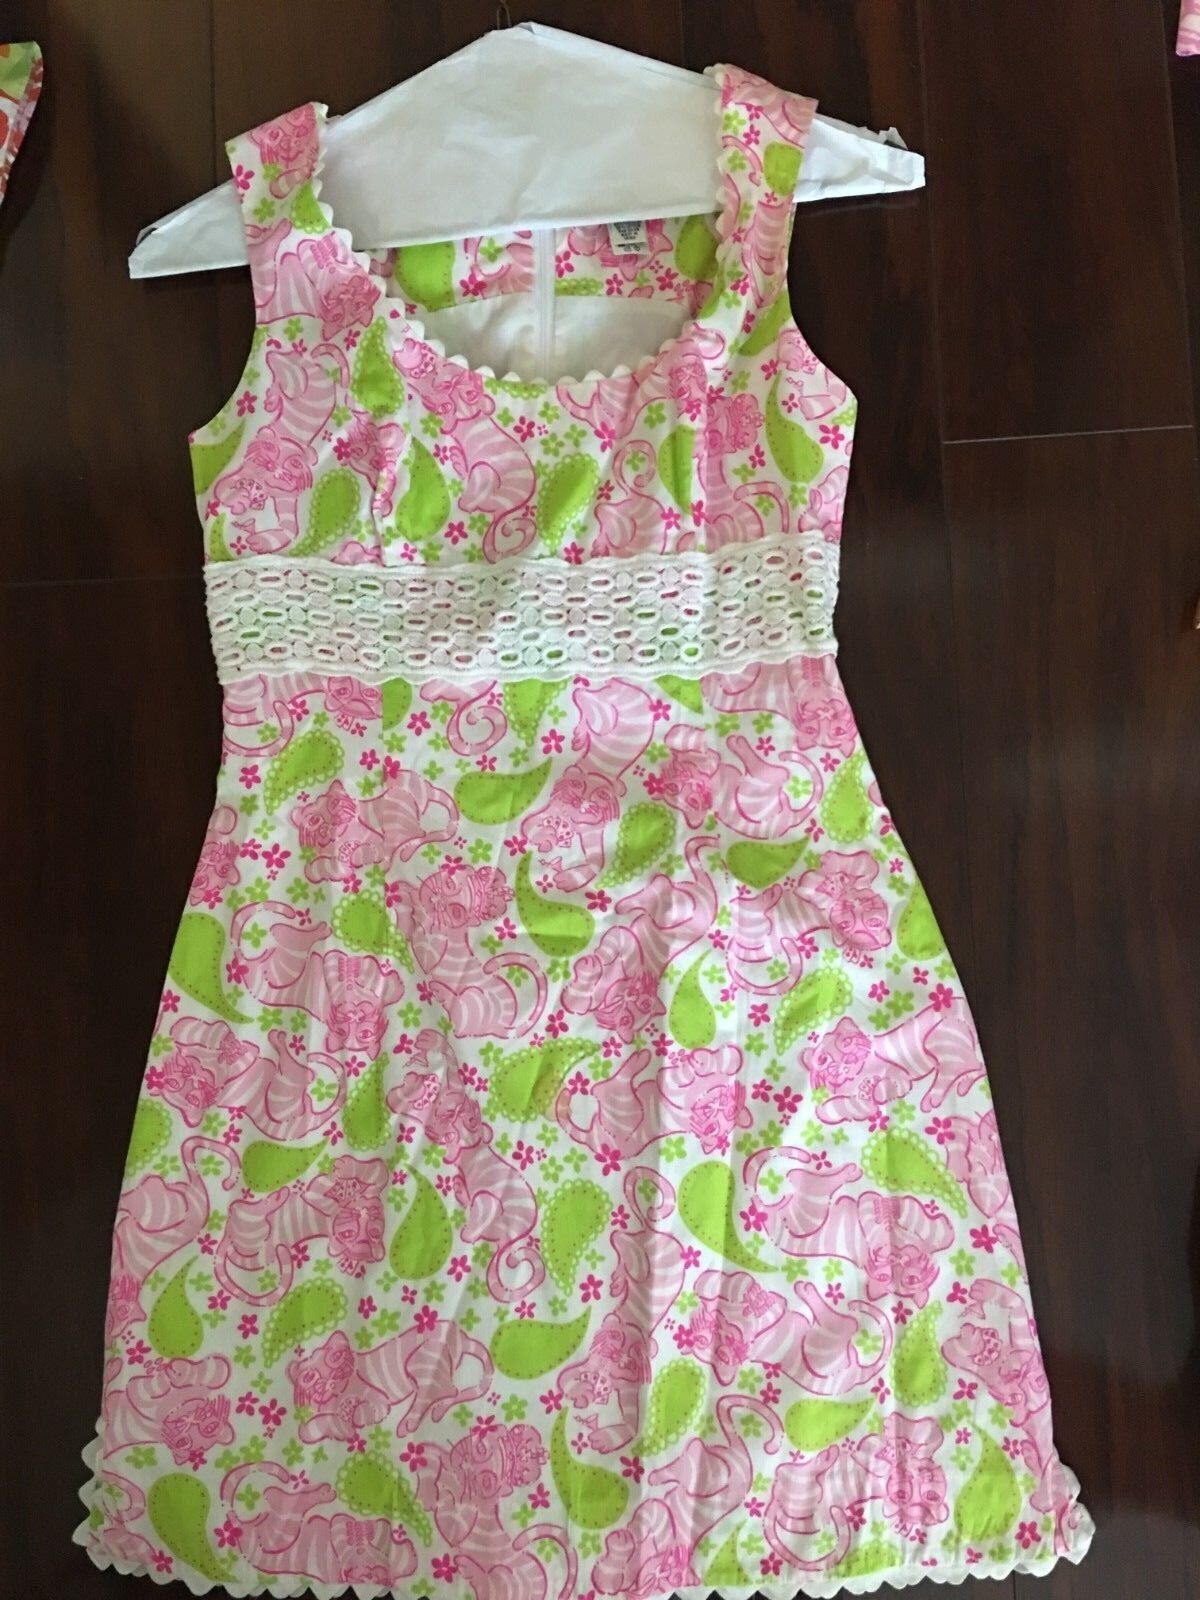 Lilly Pulitzer Sz 4 Shift Dress Rosa Grün Leopard Cheetah Scallop Hem Paisley